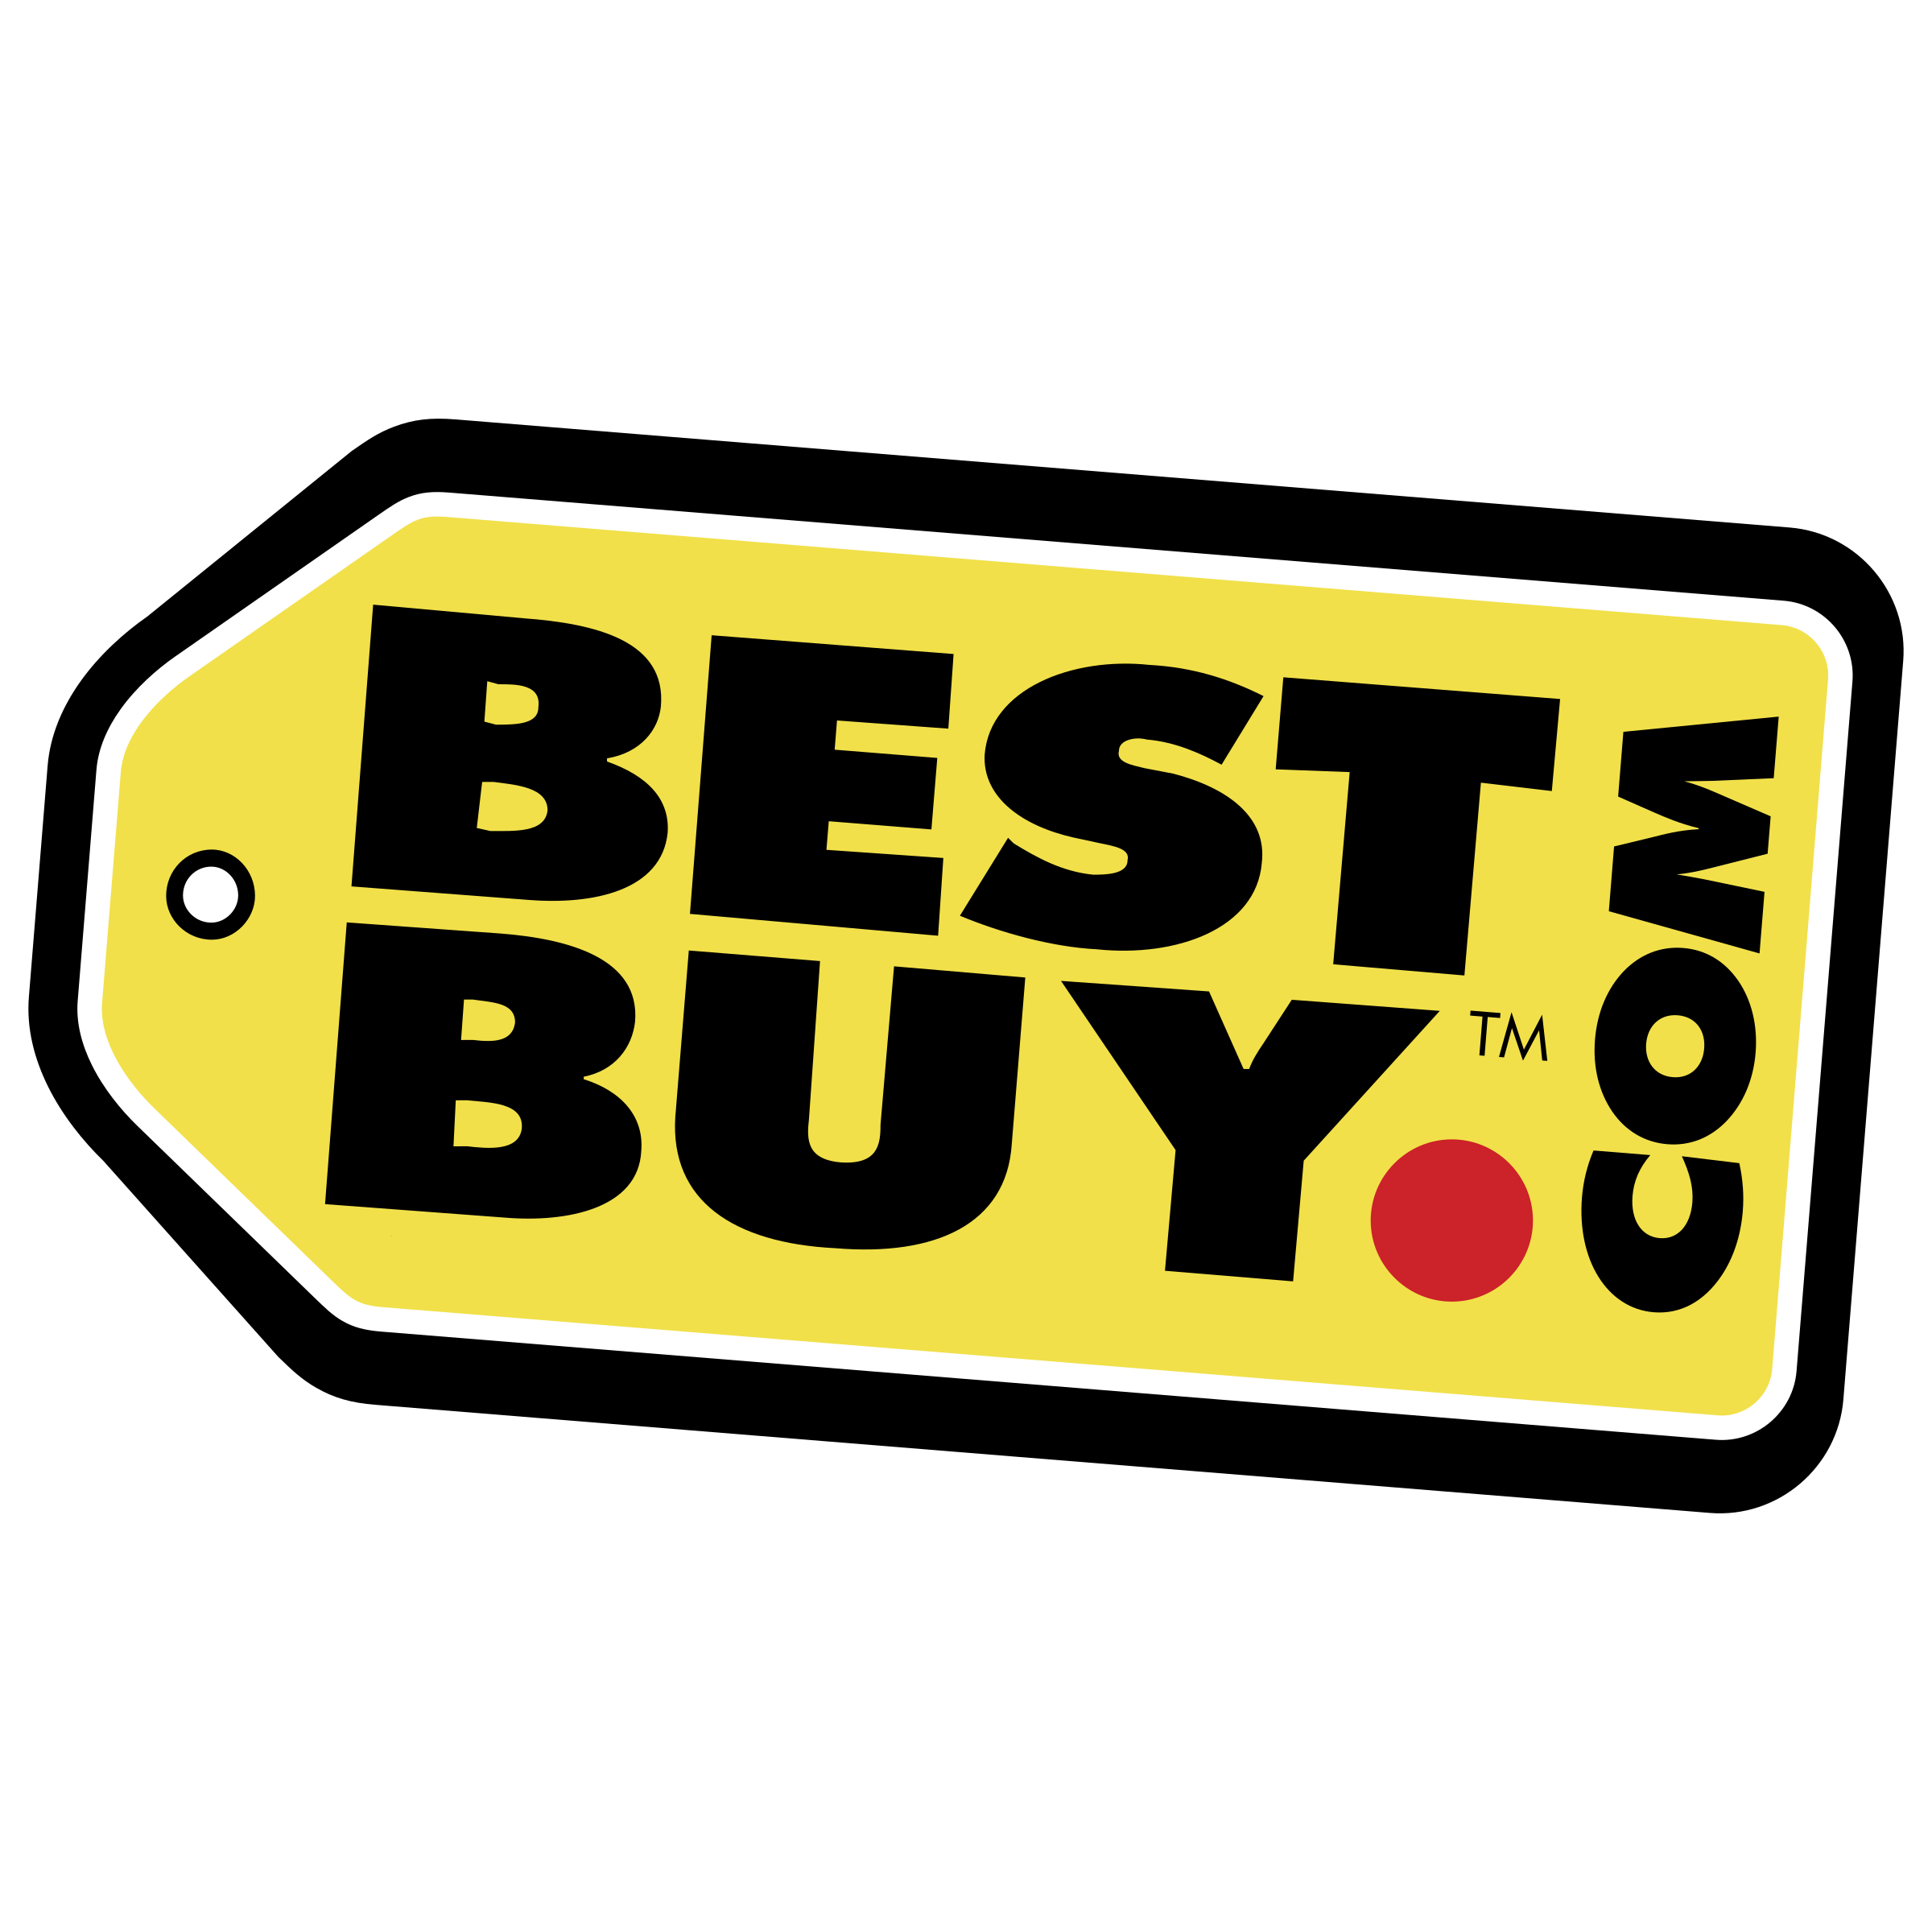 Buy vector. Best com logo png